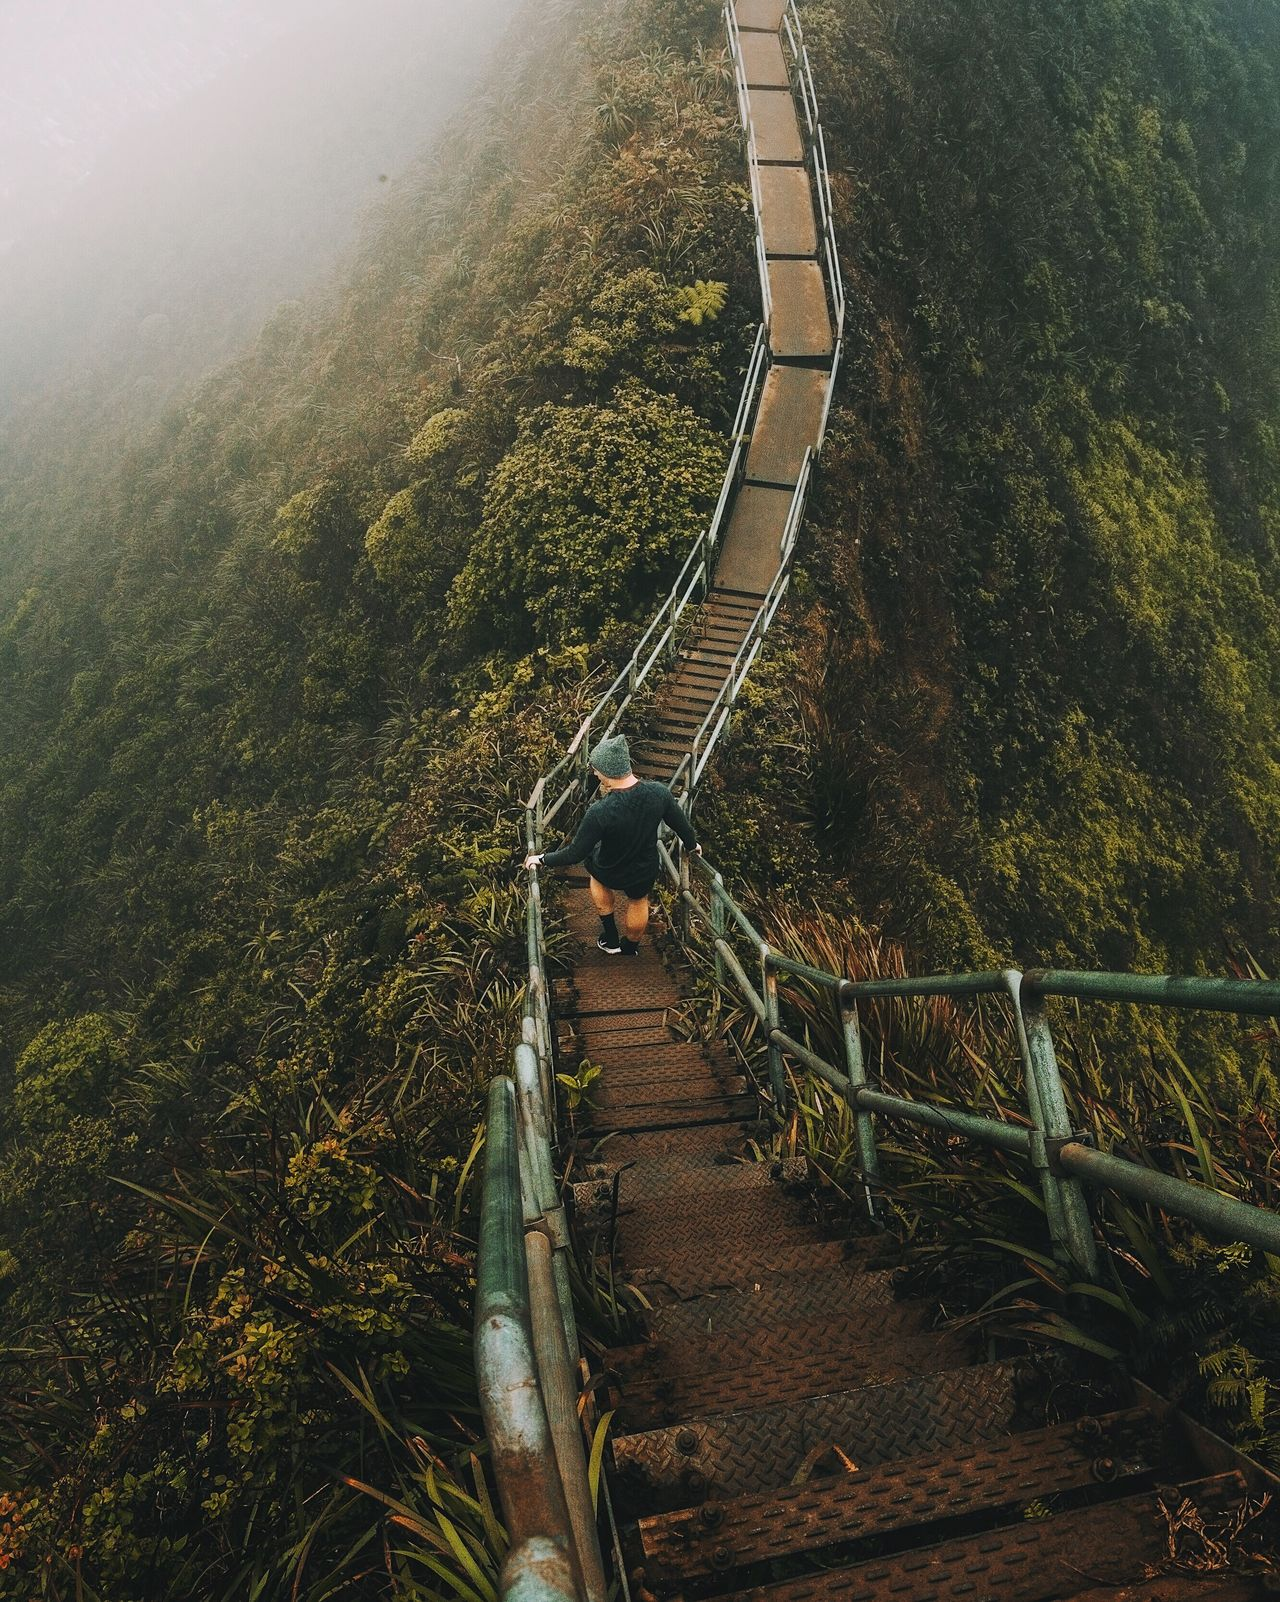 Stairway to Heaven hike. Live For The Story High Angle View Nature Day Landscape Beauty In Nature Growth Mountain Scenics Outdoors Real People Forest Tree One Person Sky People